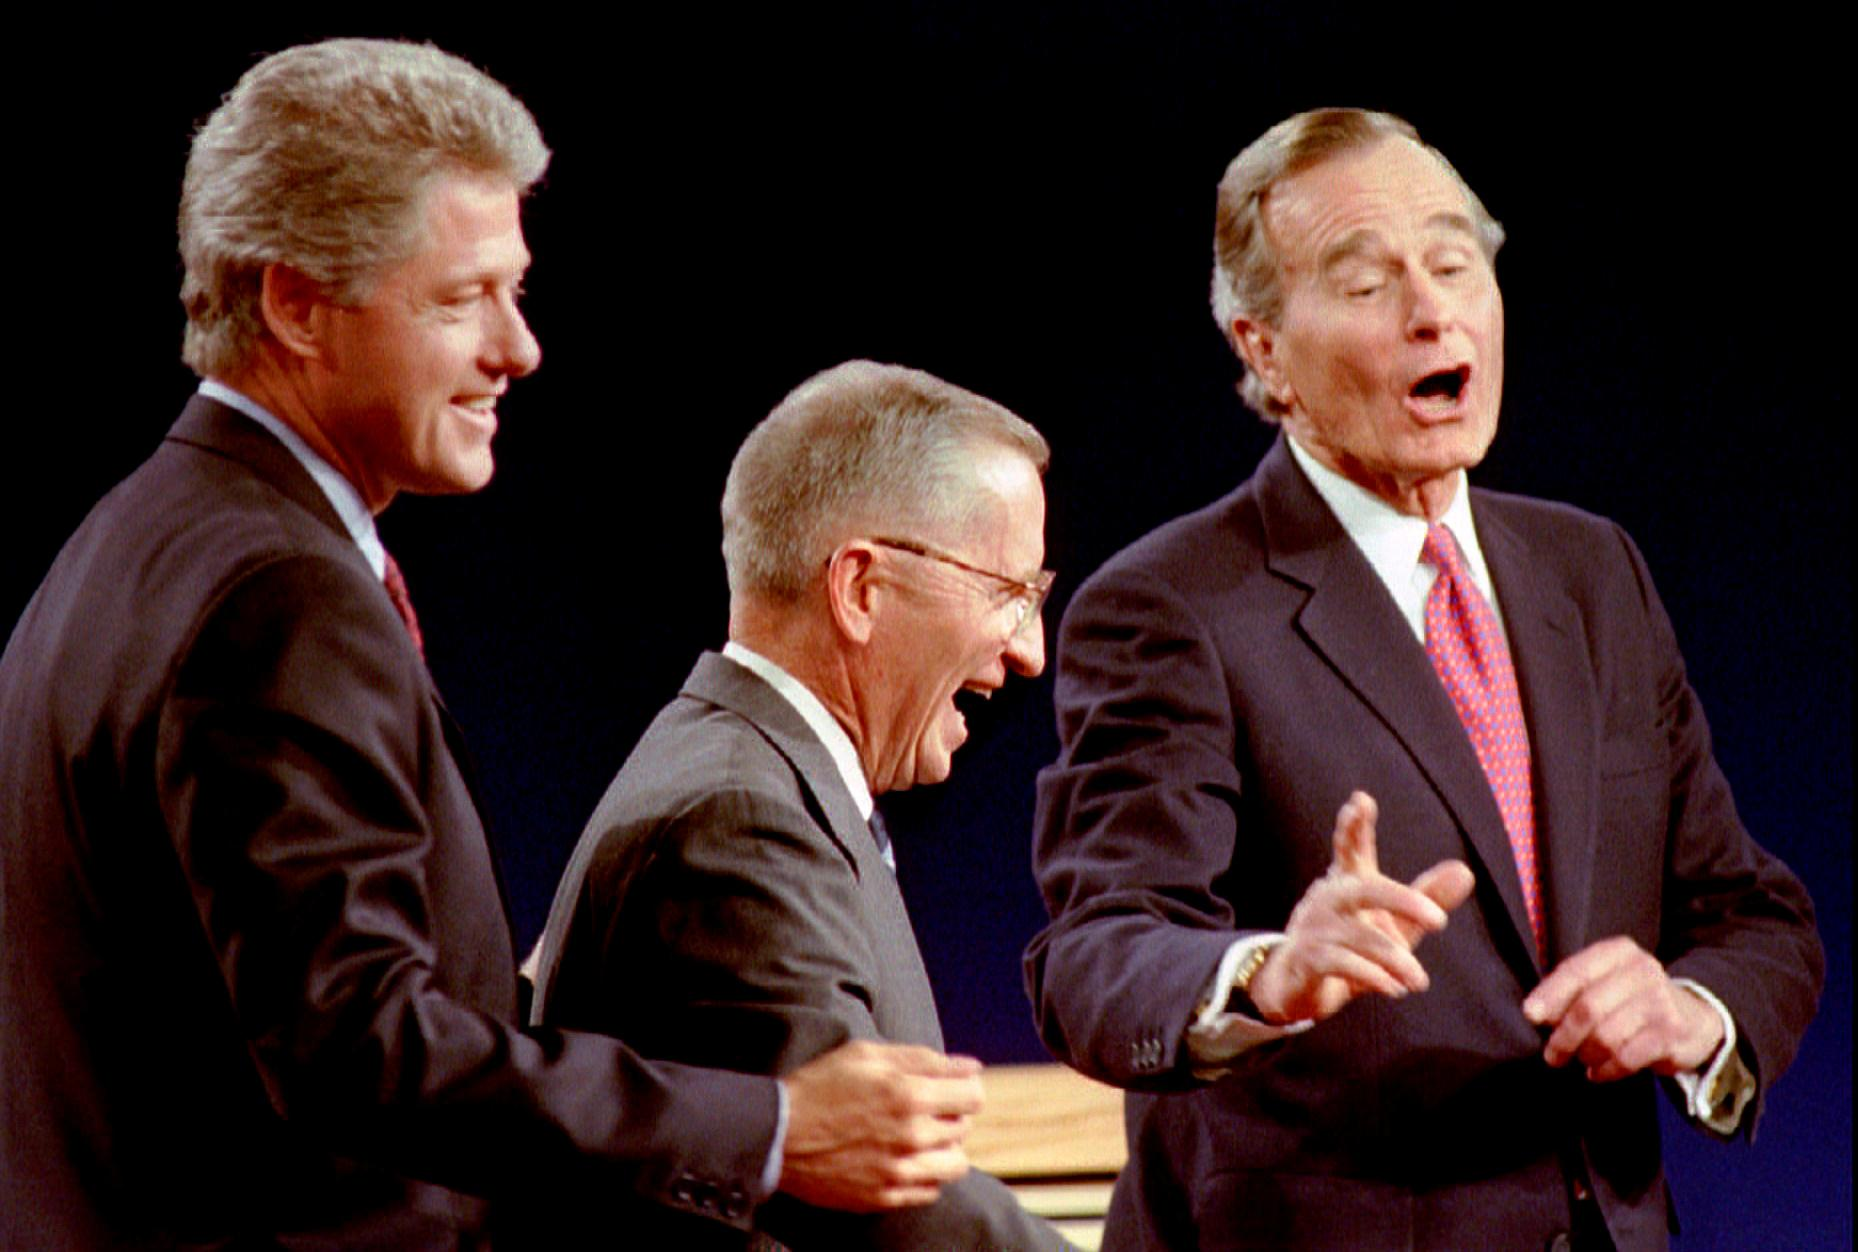 U.S. billionaire Ross Perot, who shook up presidential politics in the 1990s, dead at 89 2